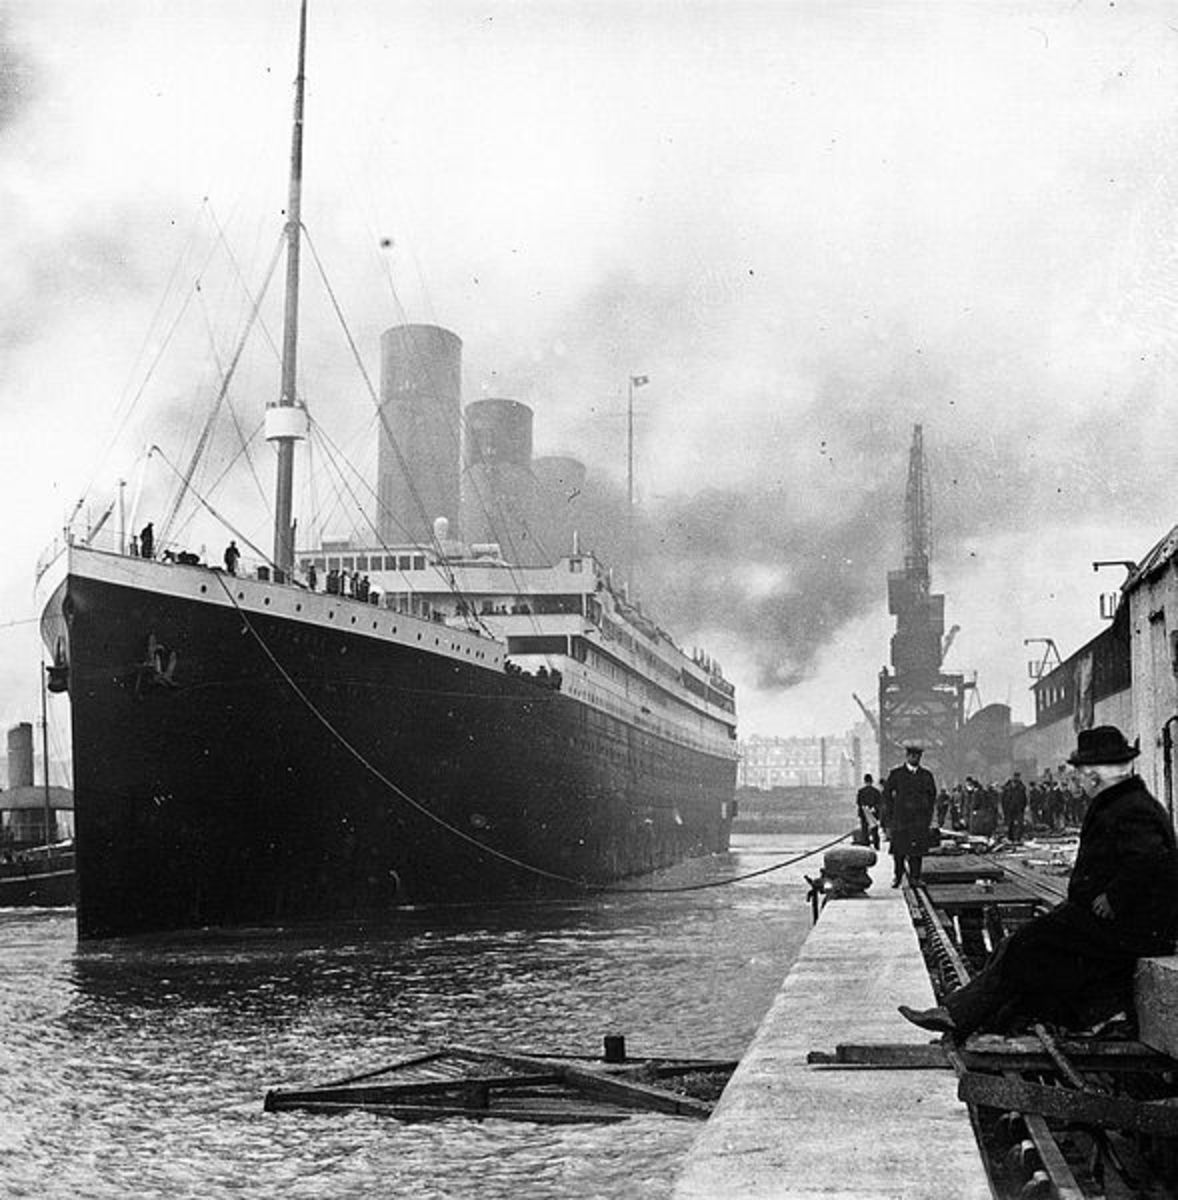 The Titanic docked before its ill-fated voyage.